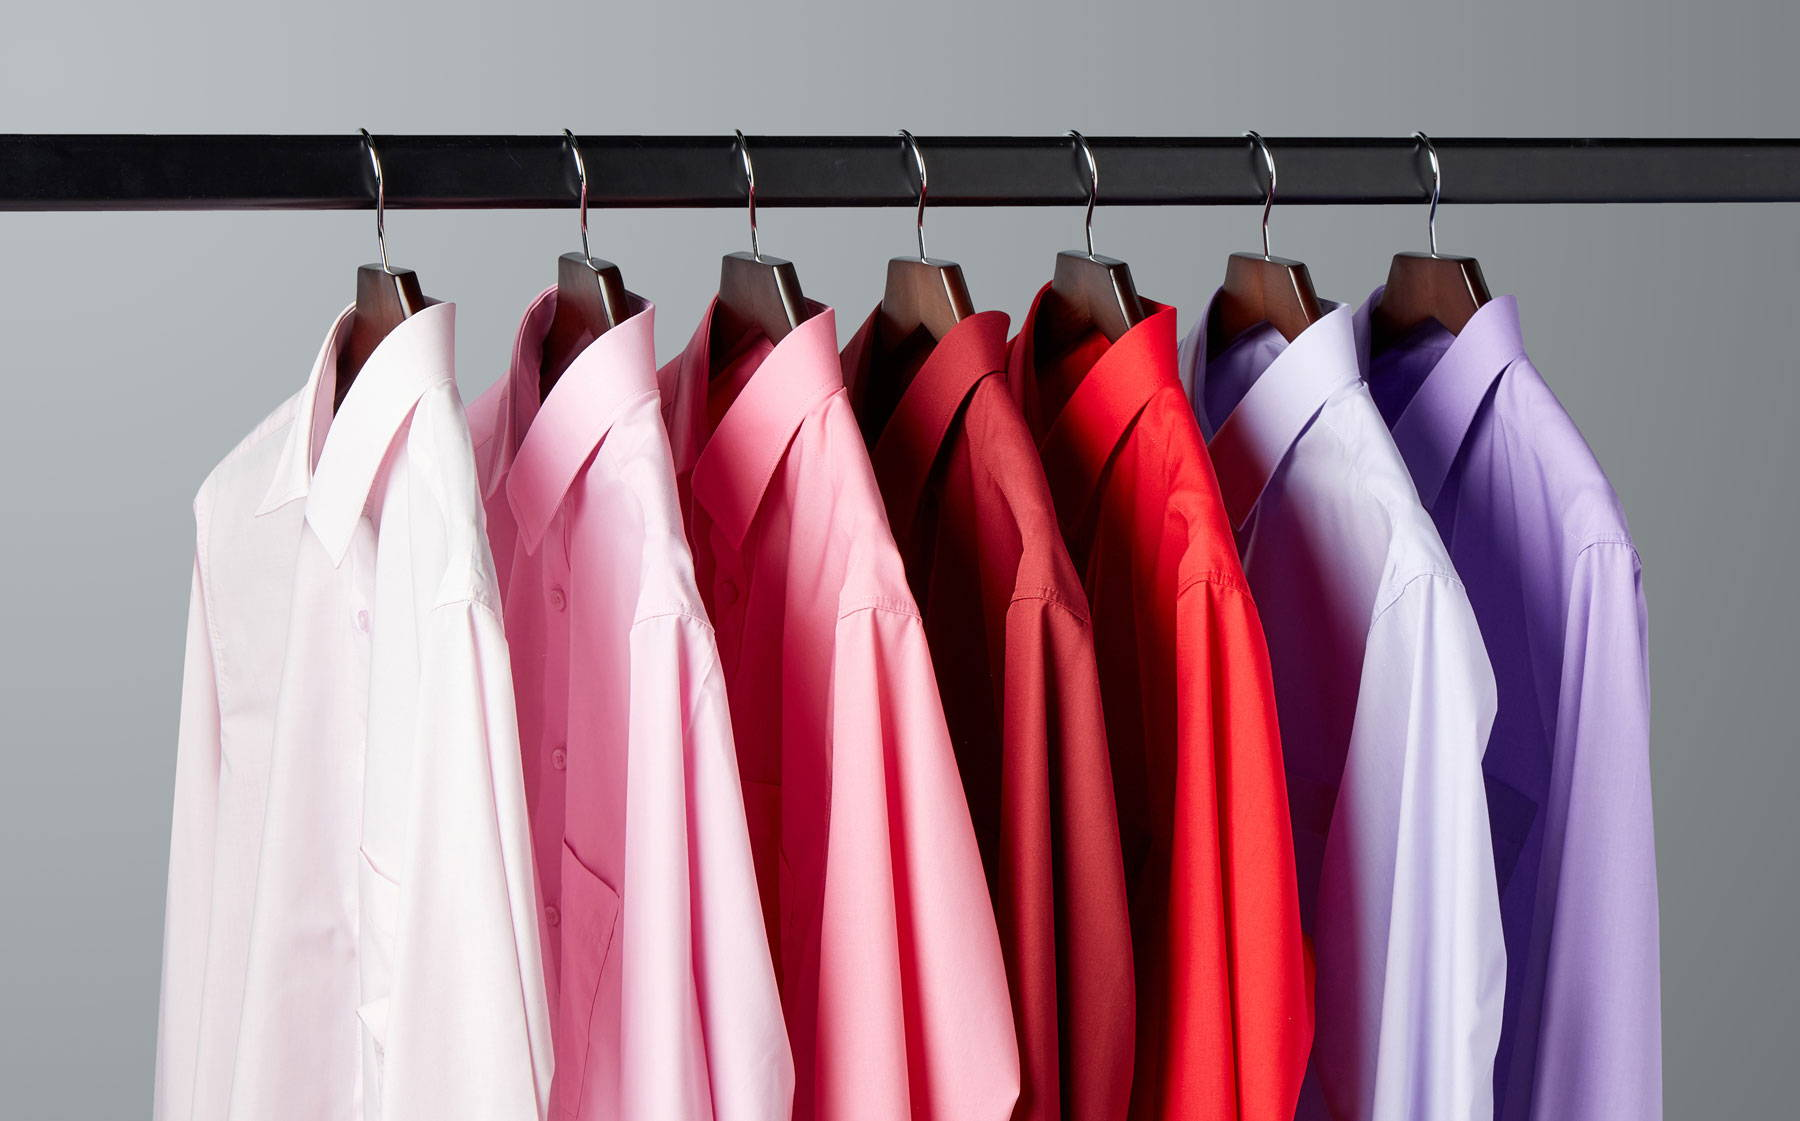 Pink and red shirts hanging on rail